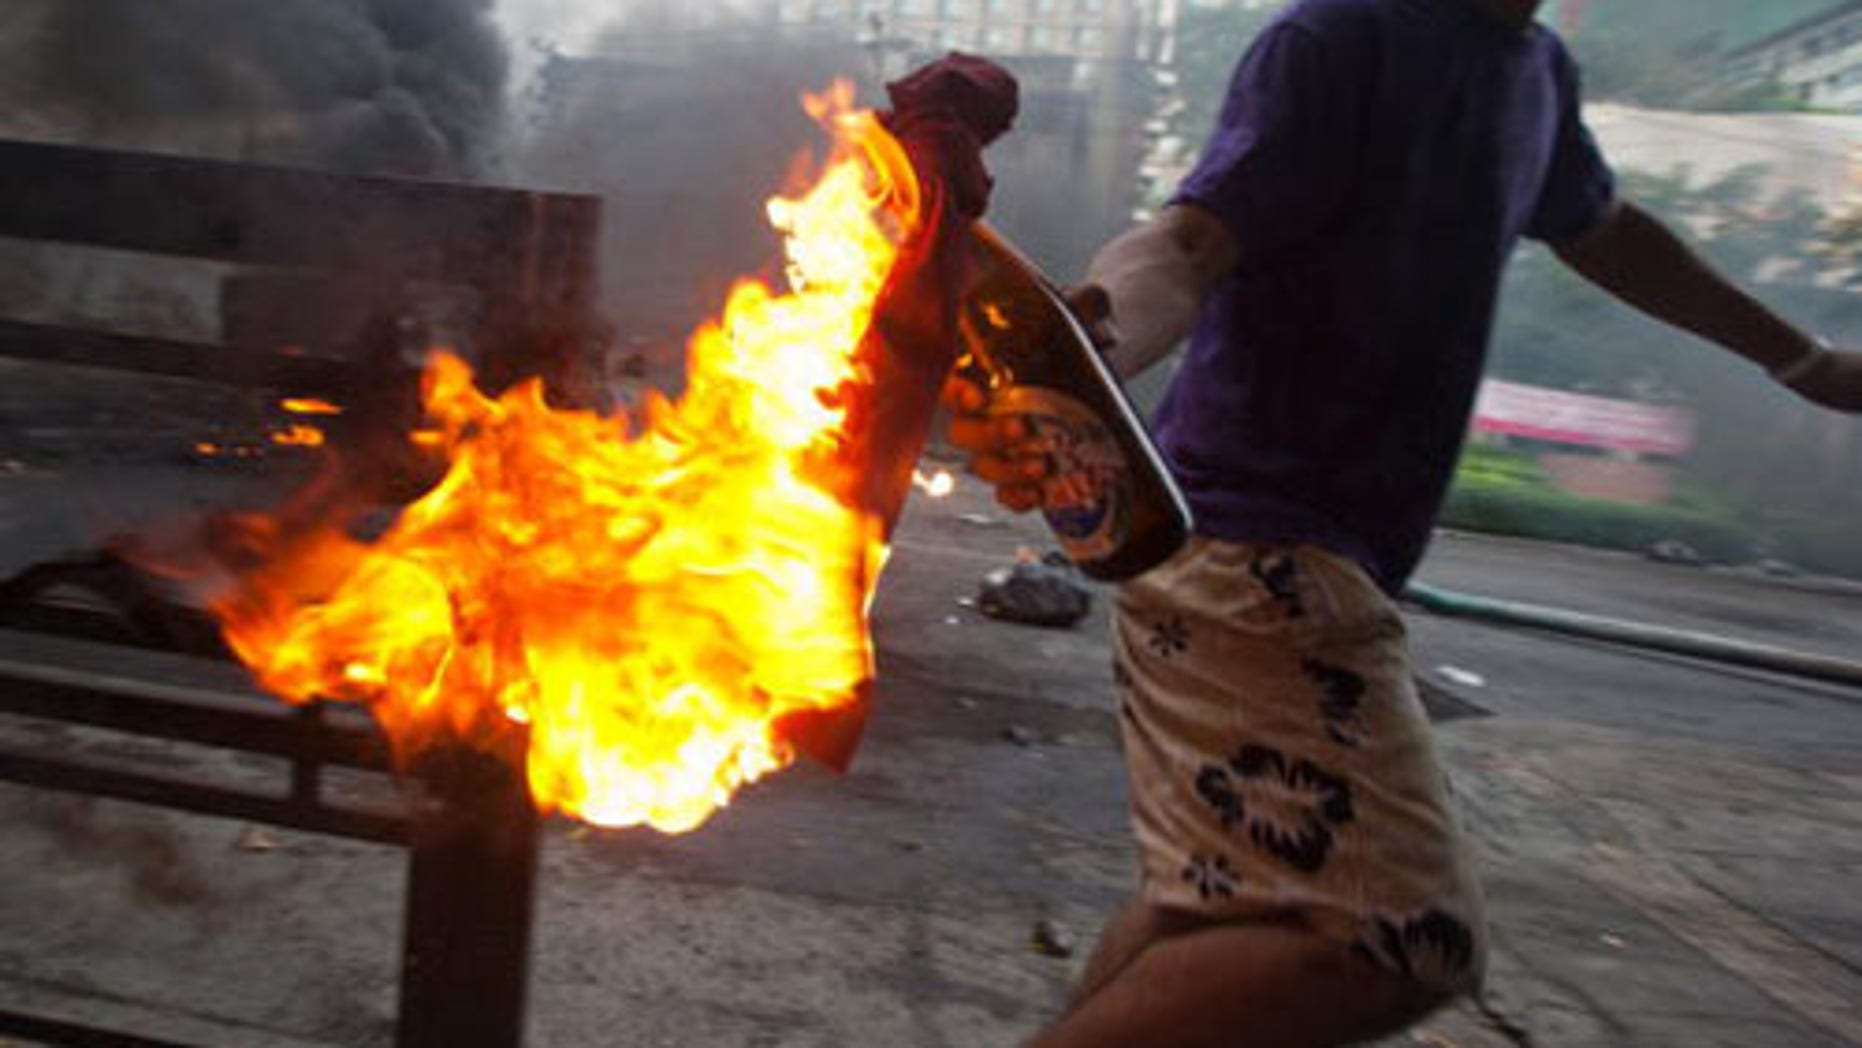 """BANGKOK, THAILAND - MAY 16:  An anti-government protester 'Red Shirt' throws a molotov cocktail toward Thai security forces as the violence in central Bangkok continues on May 16, 2010 in Bangkok, Thailand. So far at least 154 have been injured and over 20 killed in the clashes as the military and the government launched an operation to disperse anti-government protesters who have closed parts of the city for two months. A state of emergency is in effect that spreads to 17 provinces in the country. The Thai army declared certain protest areas where clashes are taking place as a """"Live Fire Zone.""""  (Photo by Athit Perawongmetha/Getty Images)"""